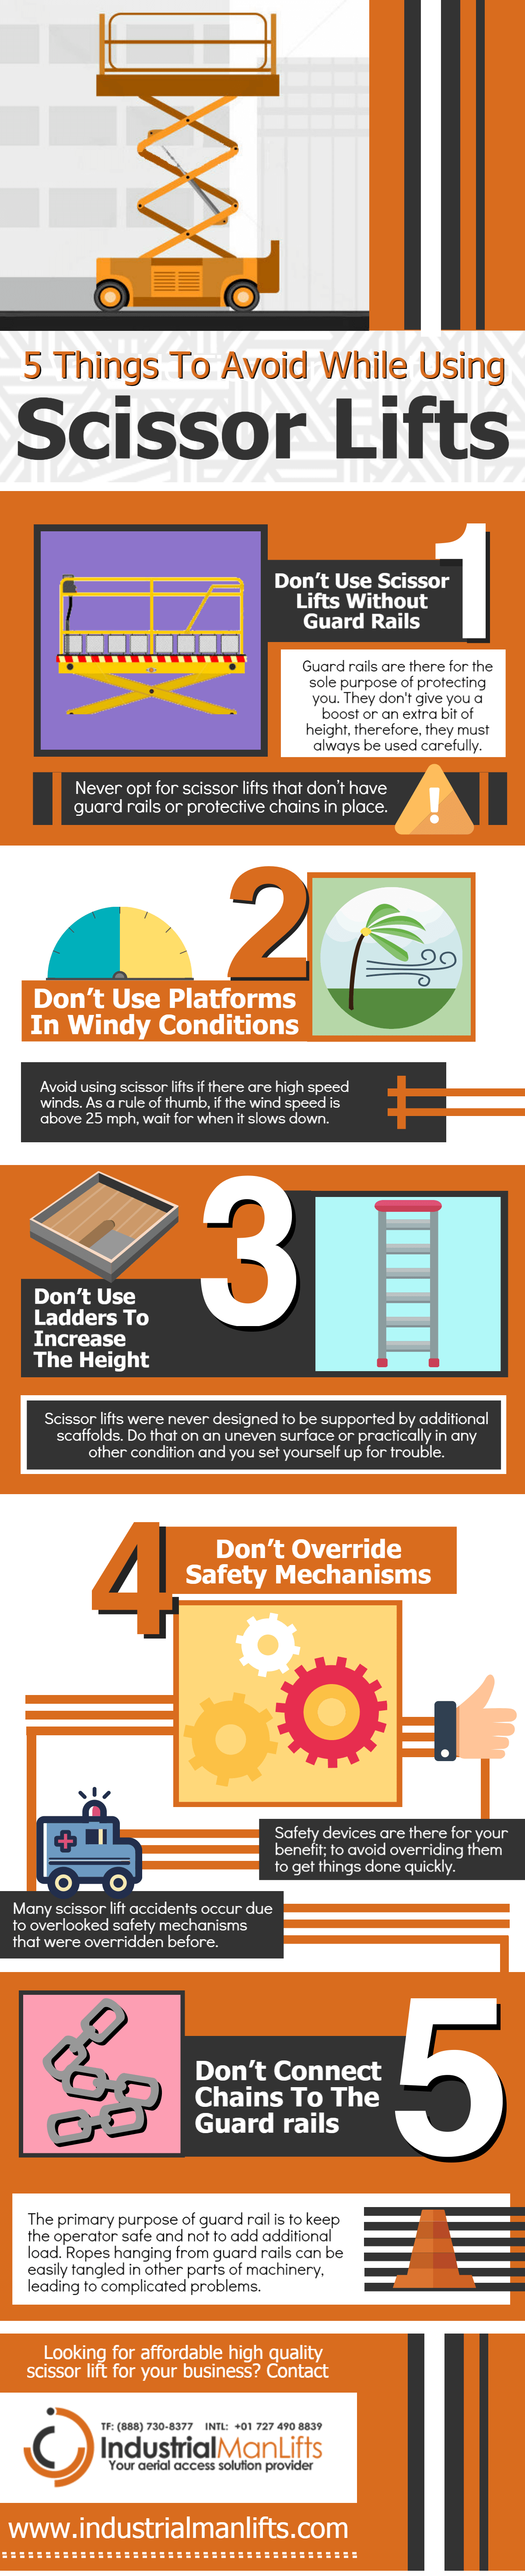 5 Things to Avoid While Using Scissor Lifts